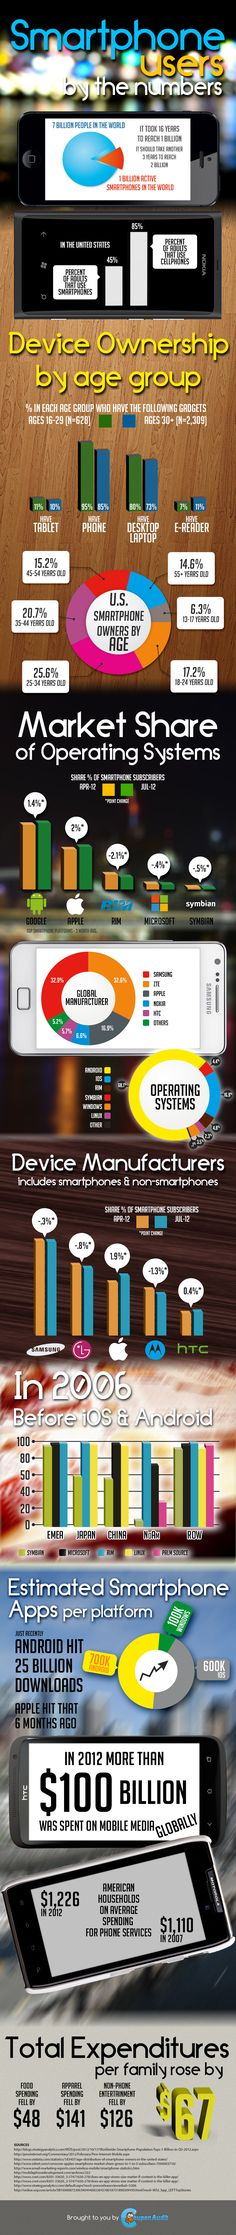 This infographic is all about the rise of smartphones and how it evolves in this generation.  There are 1 Billion smartphone users in the world and in United States alone, there is an estimated 45% of adults using smartphones and 85% used cellular phones.